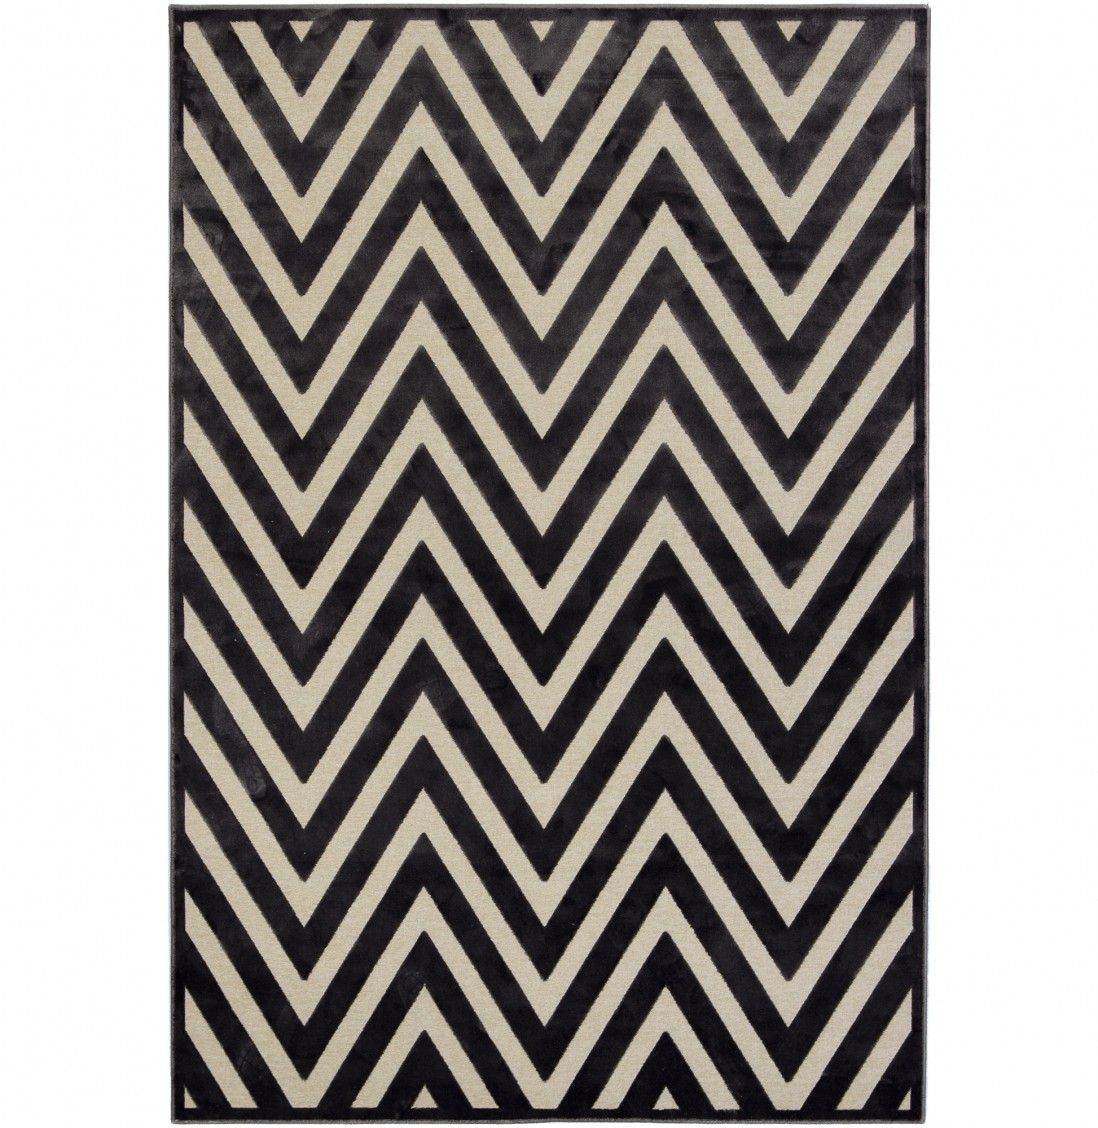 BALTIMORE 347/493343 AREA RUG